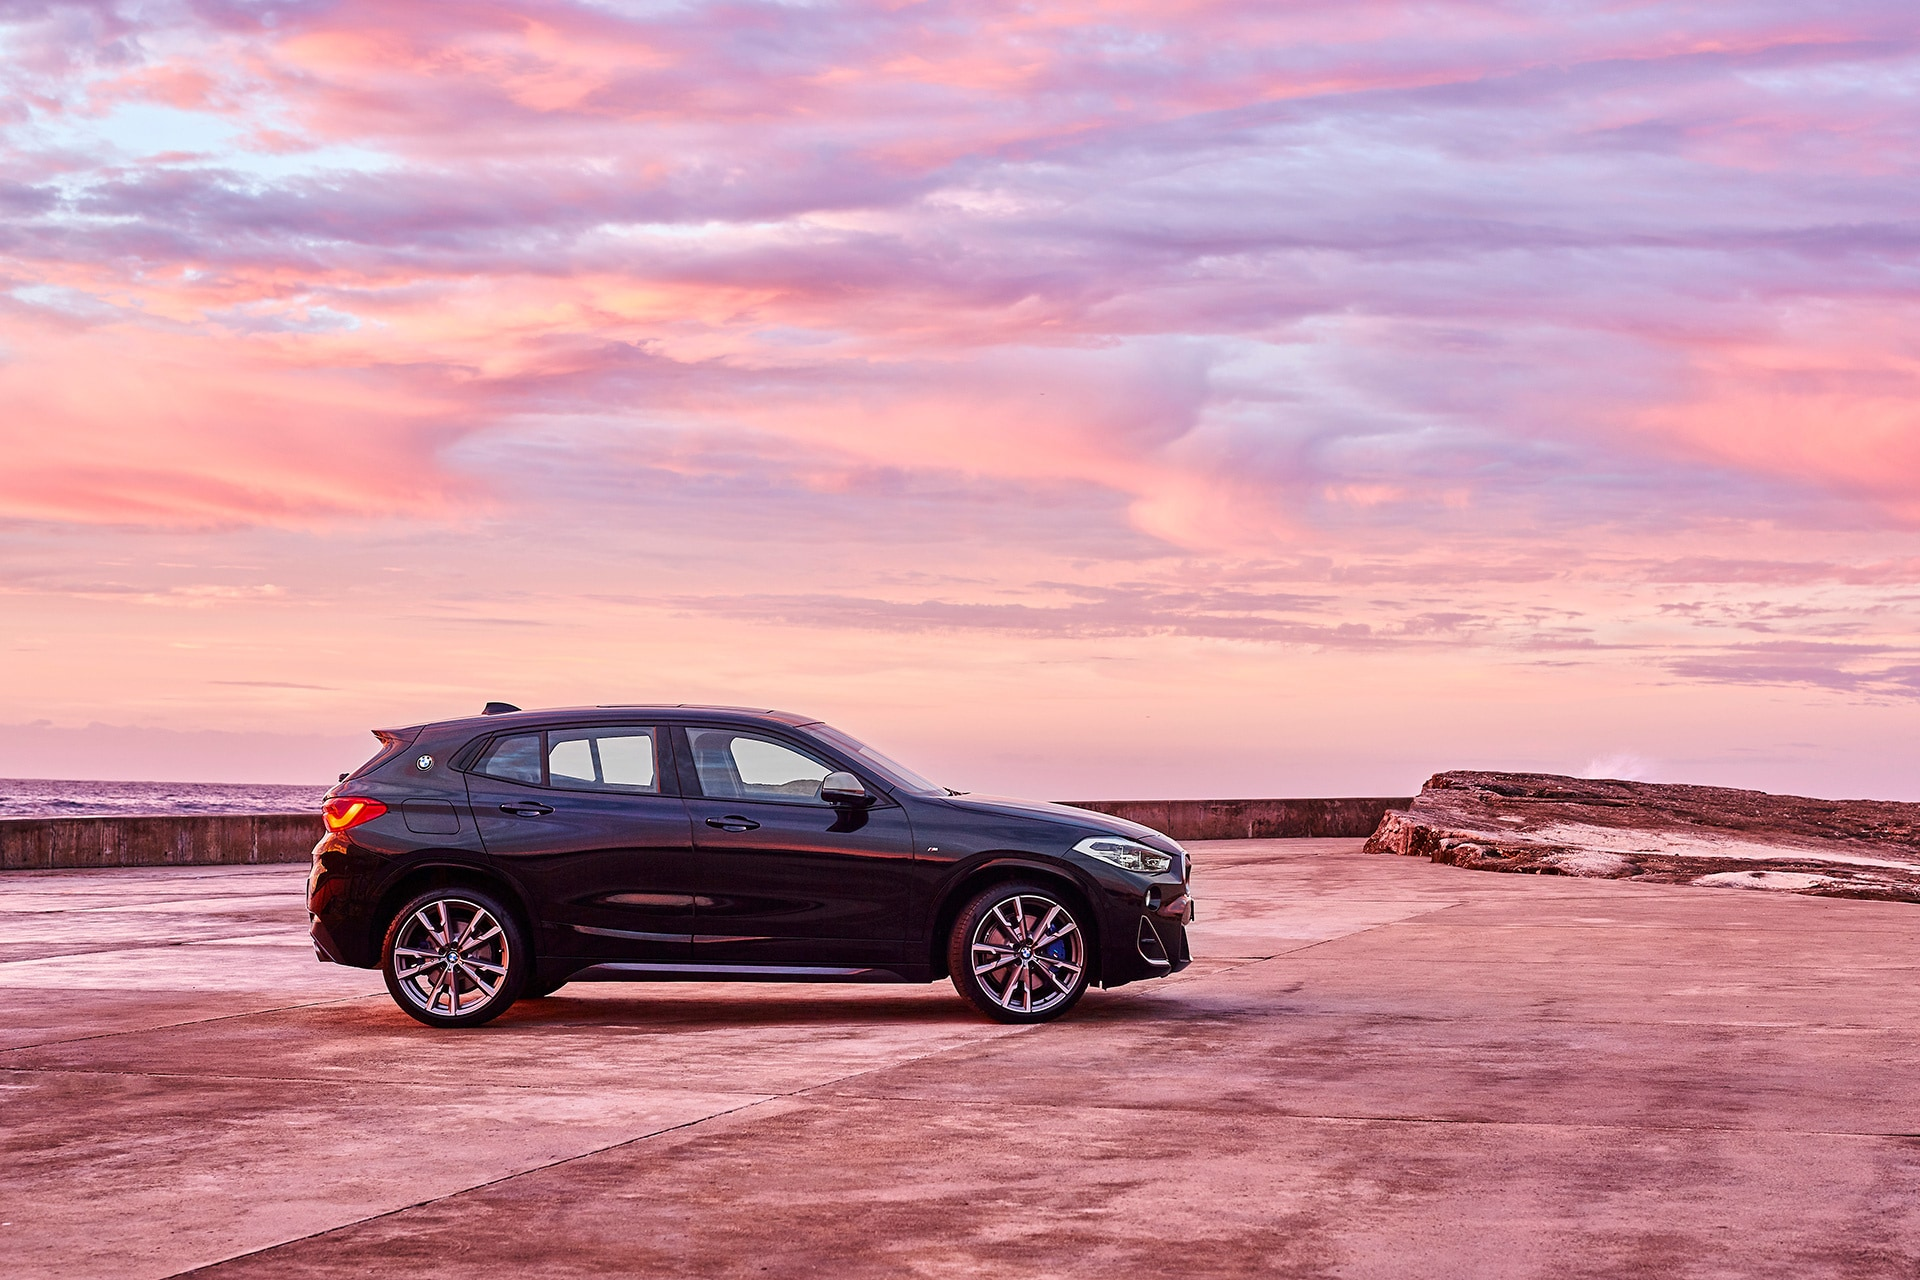 How BMW's sleek new SUV is setting itself apart from the pack